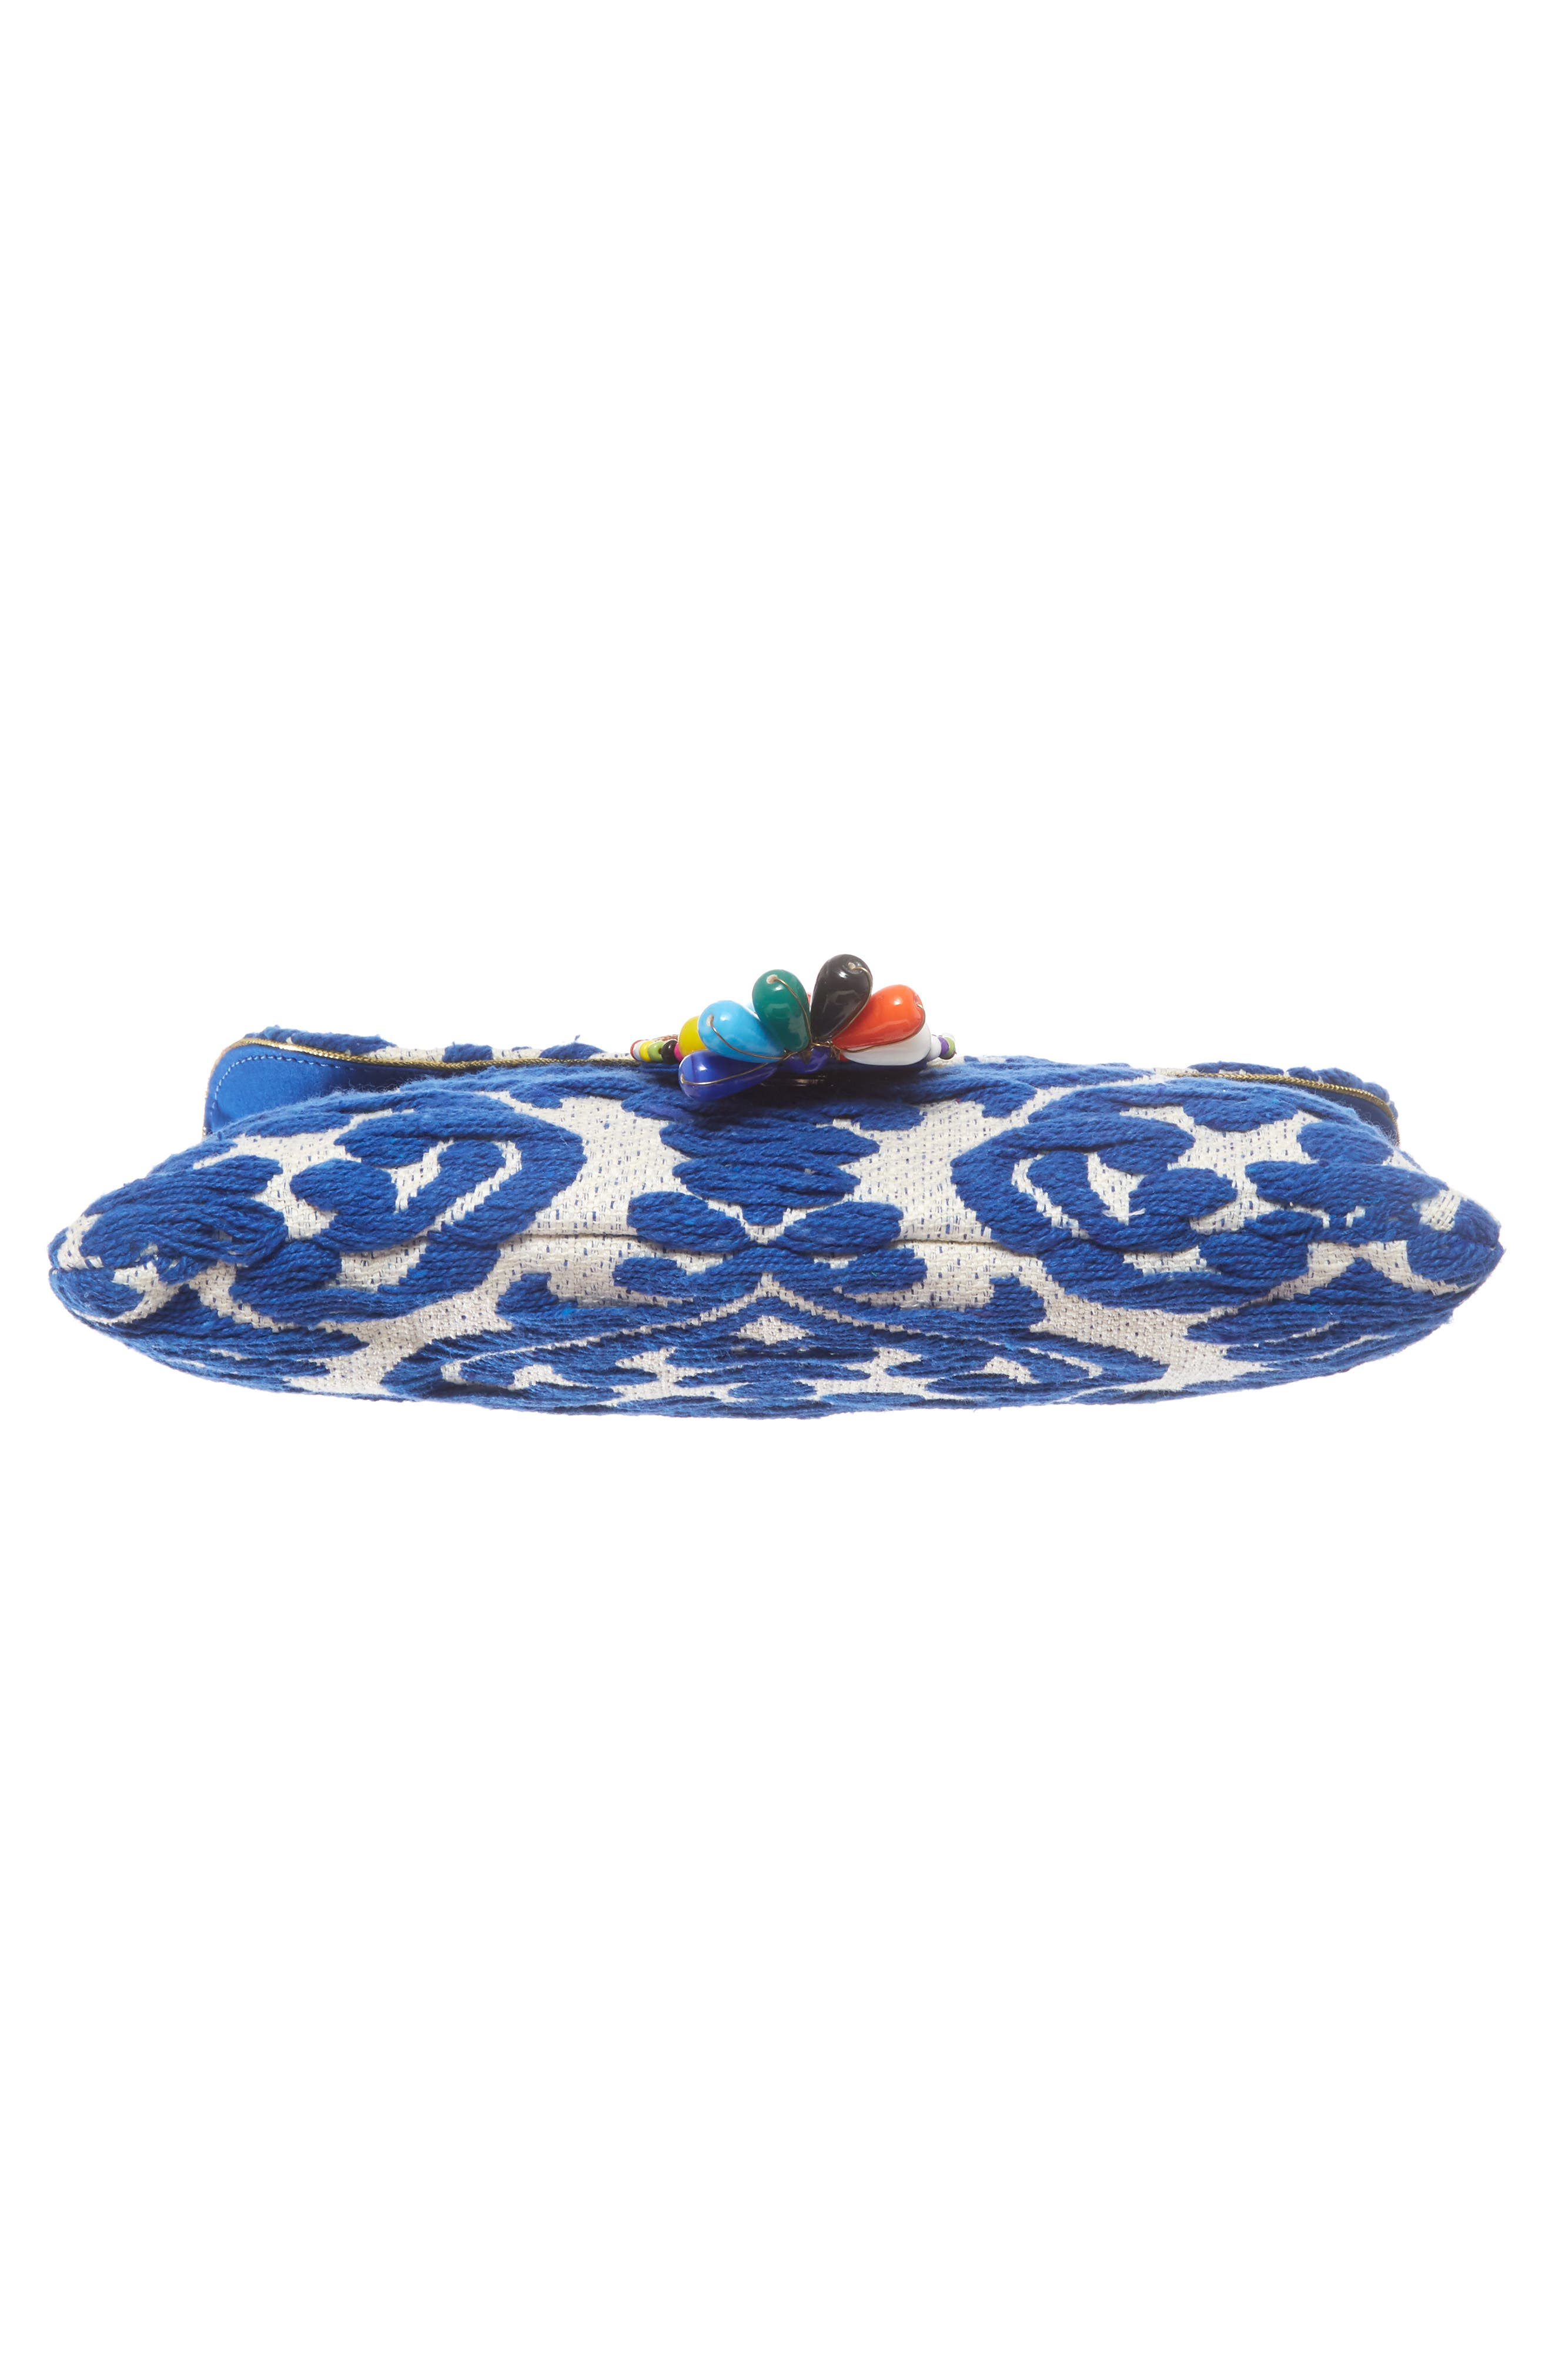 Beaded & Embroidered Clutch,                             Alternate thumbnail 6, color,                             400